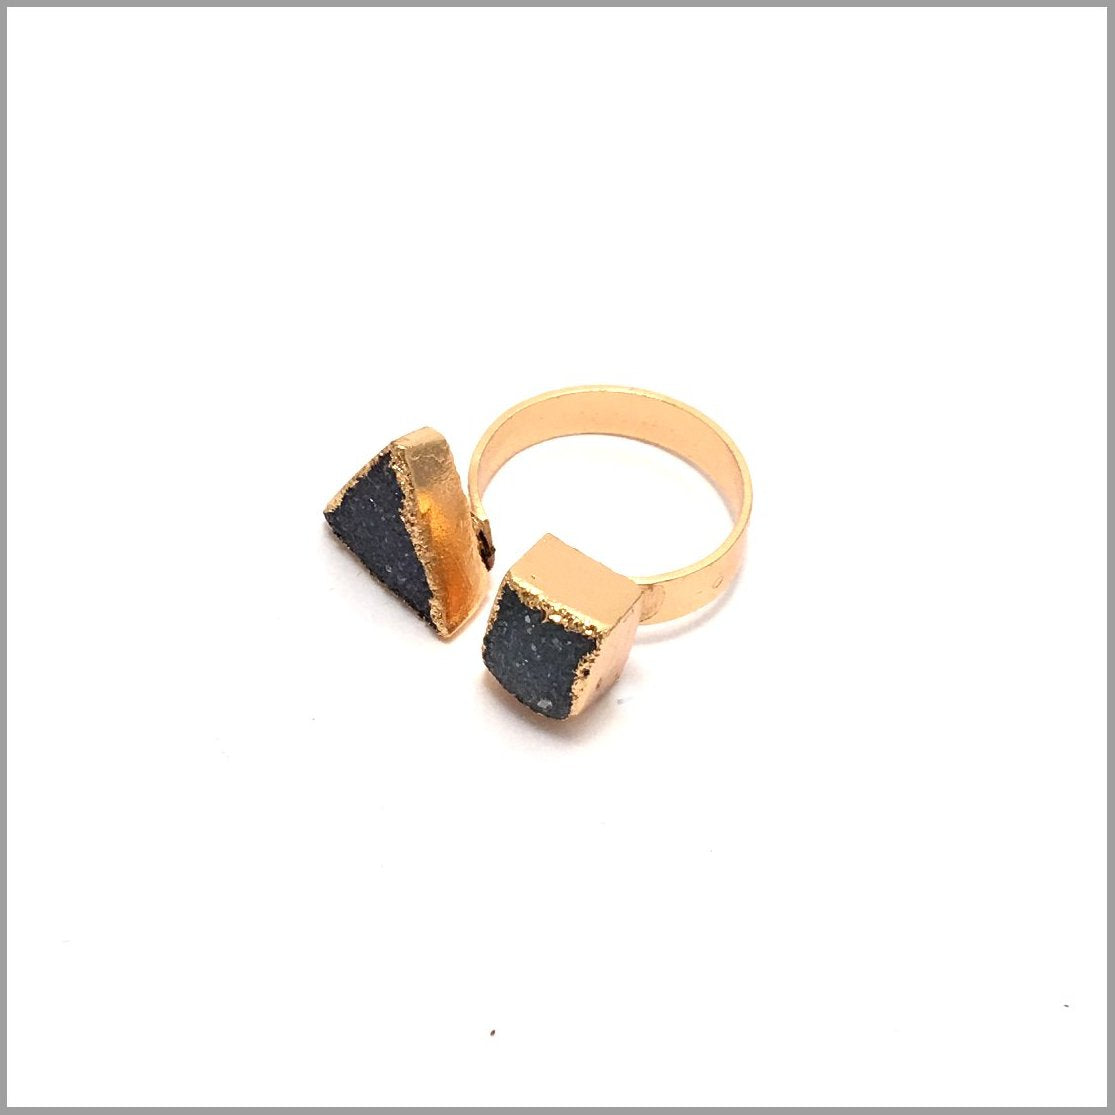 Real Druzi Ring. Hand made Drusy Ring. Trendy cocktail ring. gold-plated brass with a matte finish will not tarnish